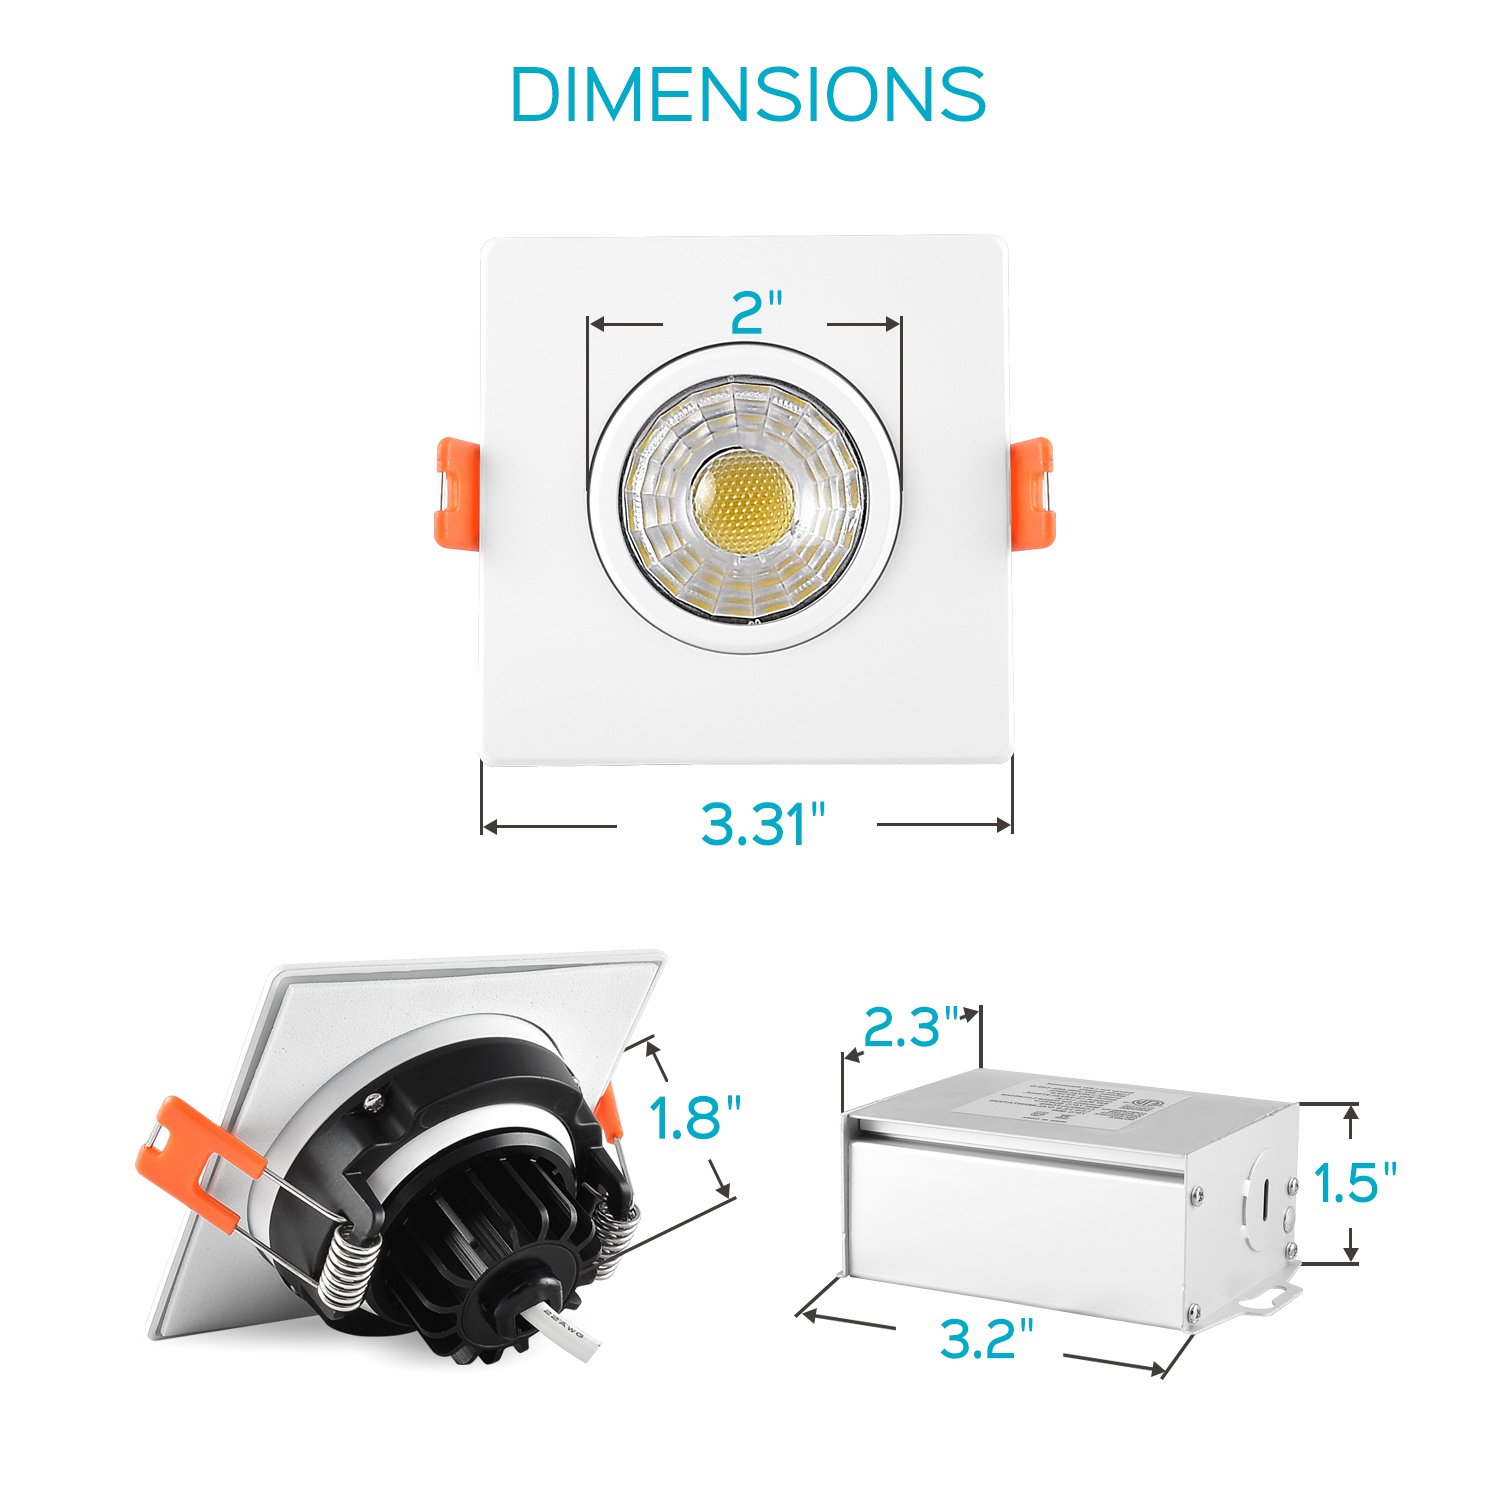 Damp Location Luxrite 3 Inch Gimbal LED Square Recessed Light with Junction Box Dimmable Downlight 8W 3000K Soft White Energy Star /& IC Rated 600 Lumens Adjustable Recessed Lighting